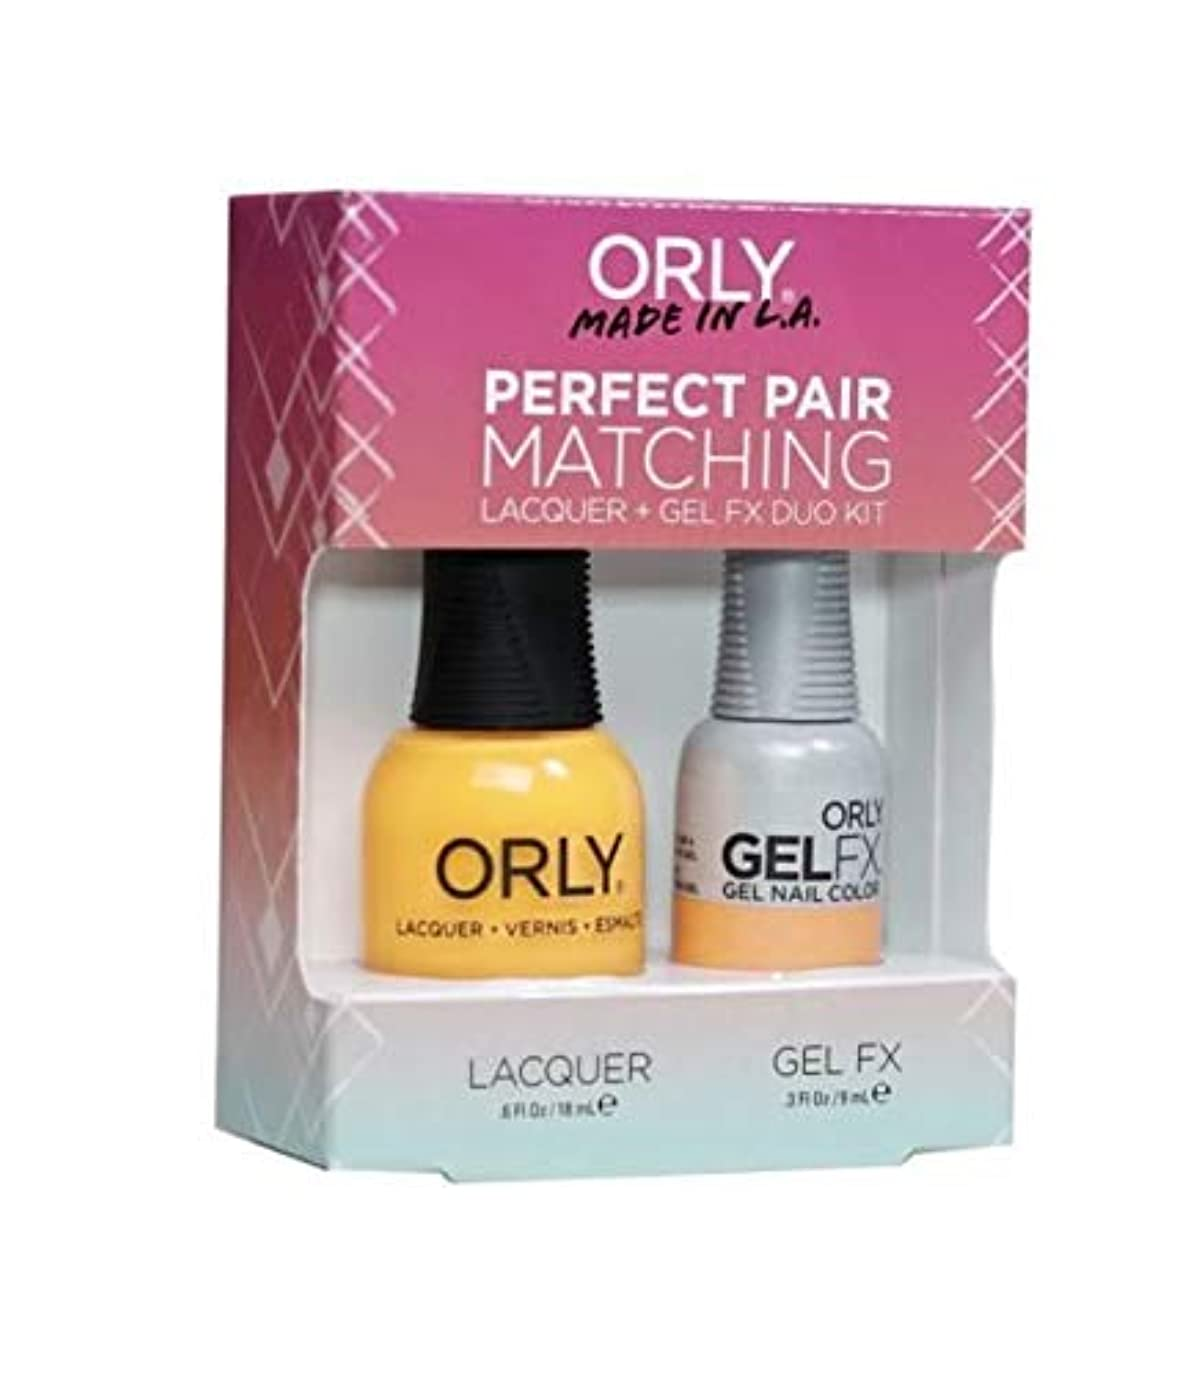 保守的スコア尊敬するOrly Lacquer + Gel FX - Perfect Pair Matching DUO Kit - Tropical Pop